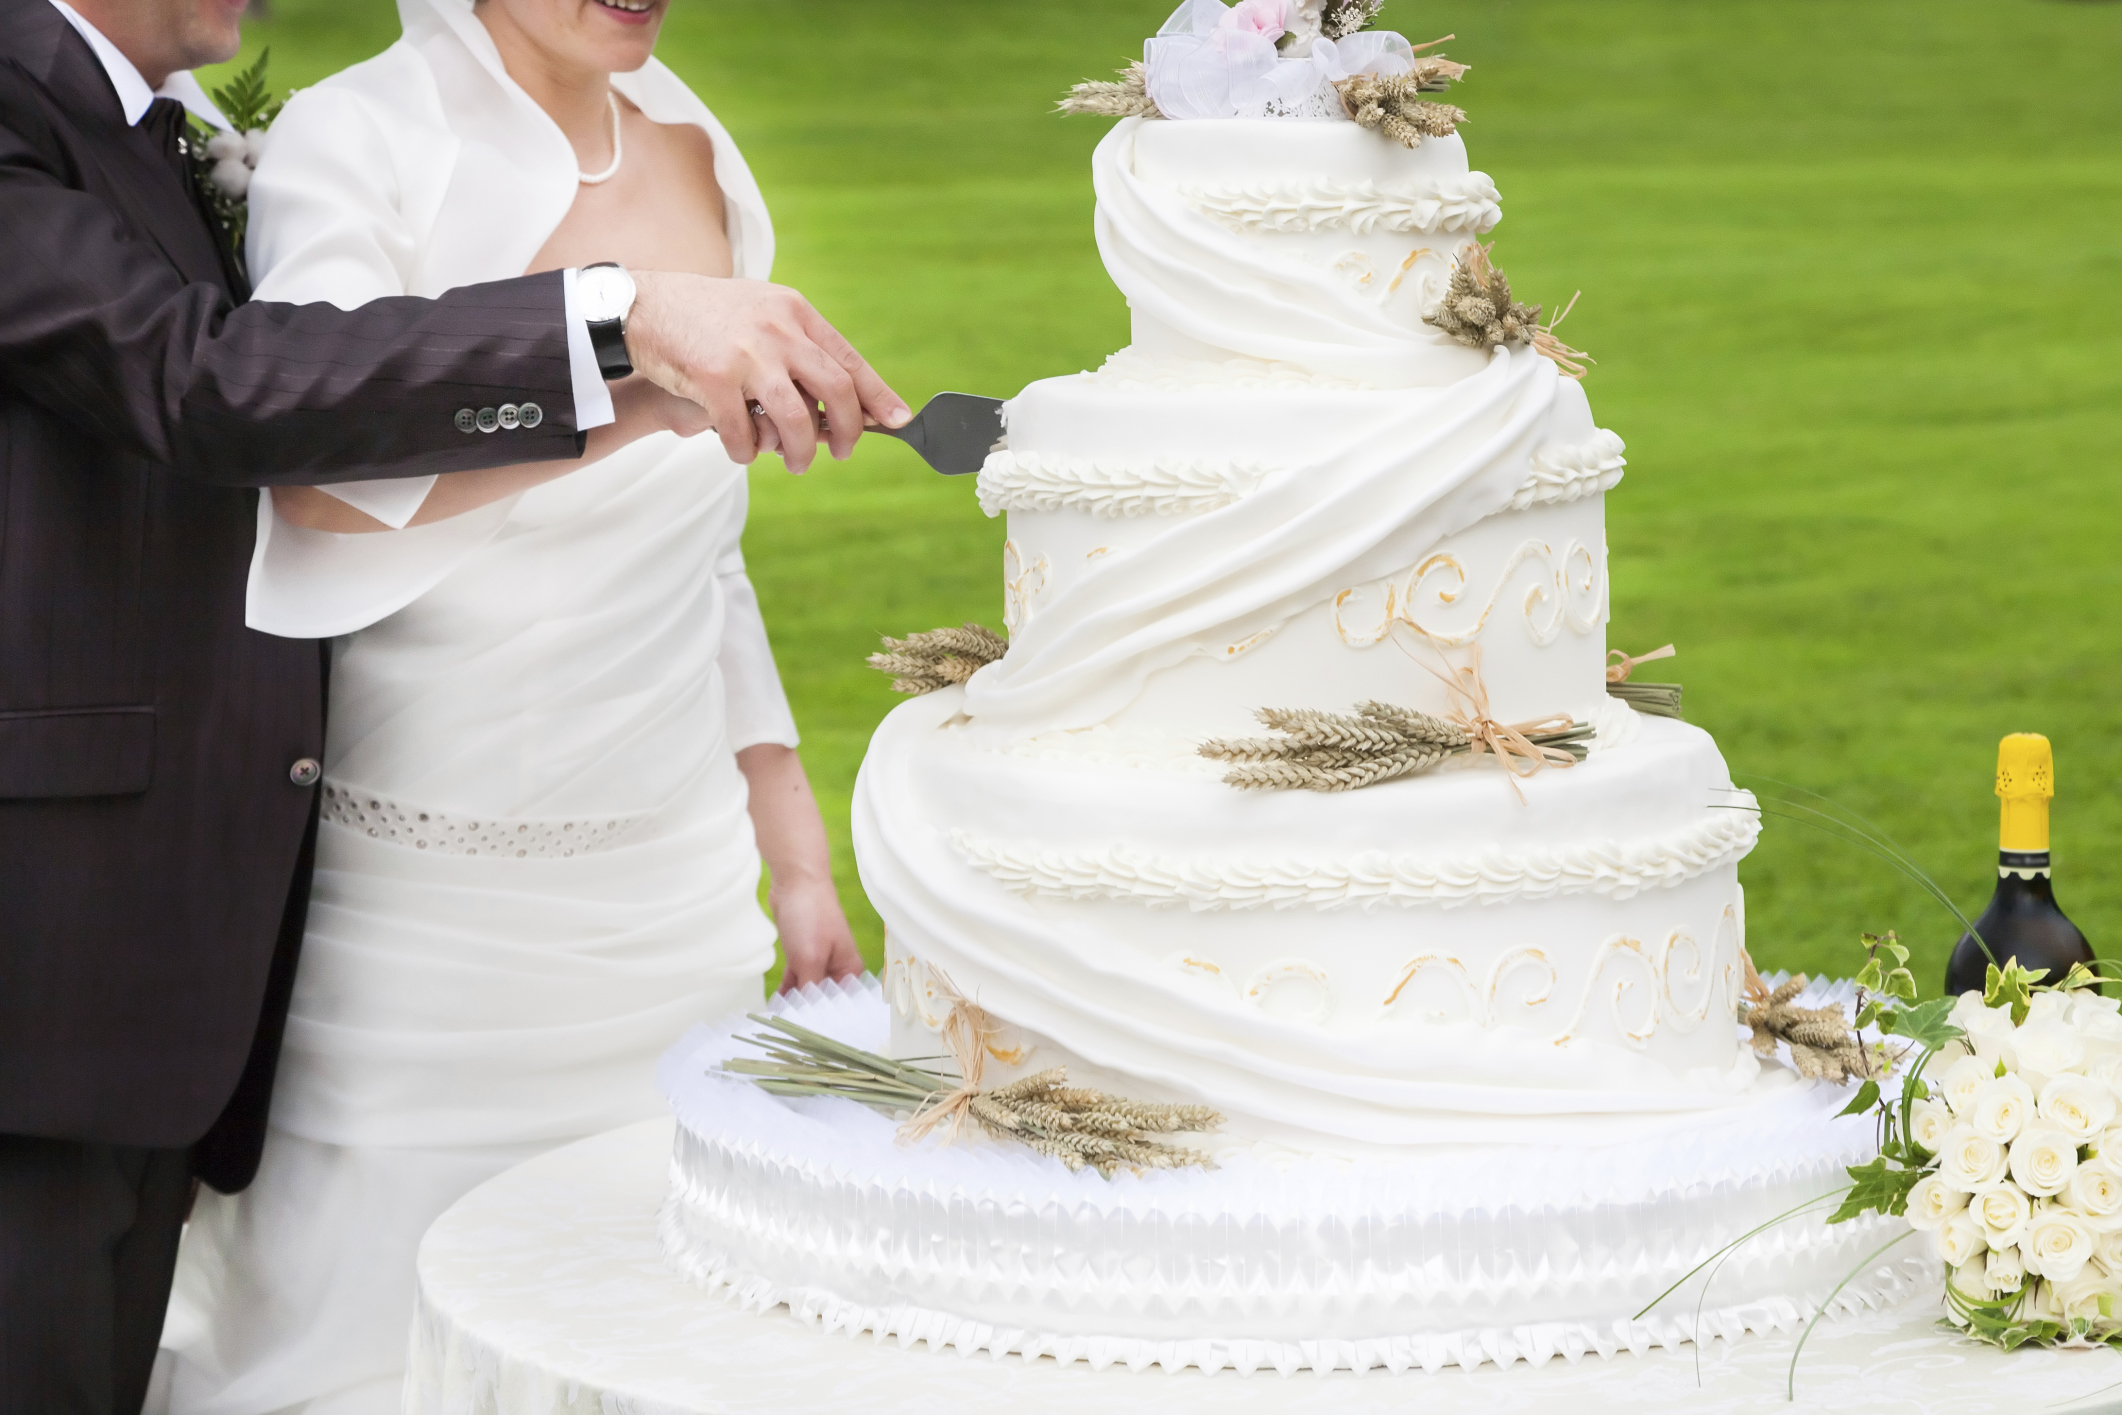 Cake cutting song ideas   Articles   Easy Weddings Cake cutting song ideas